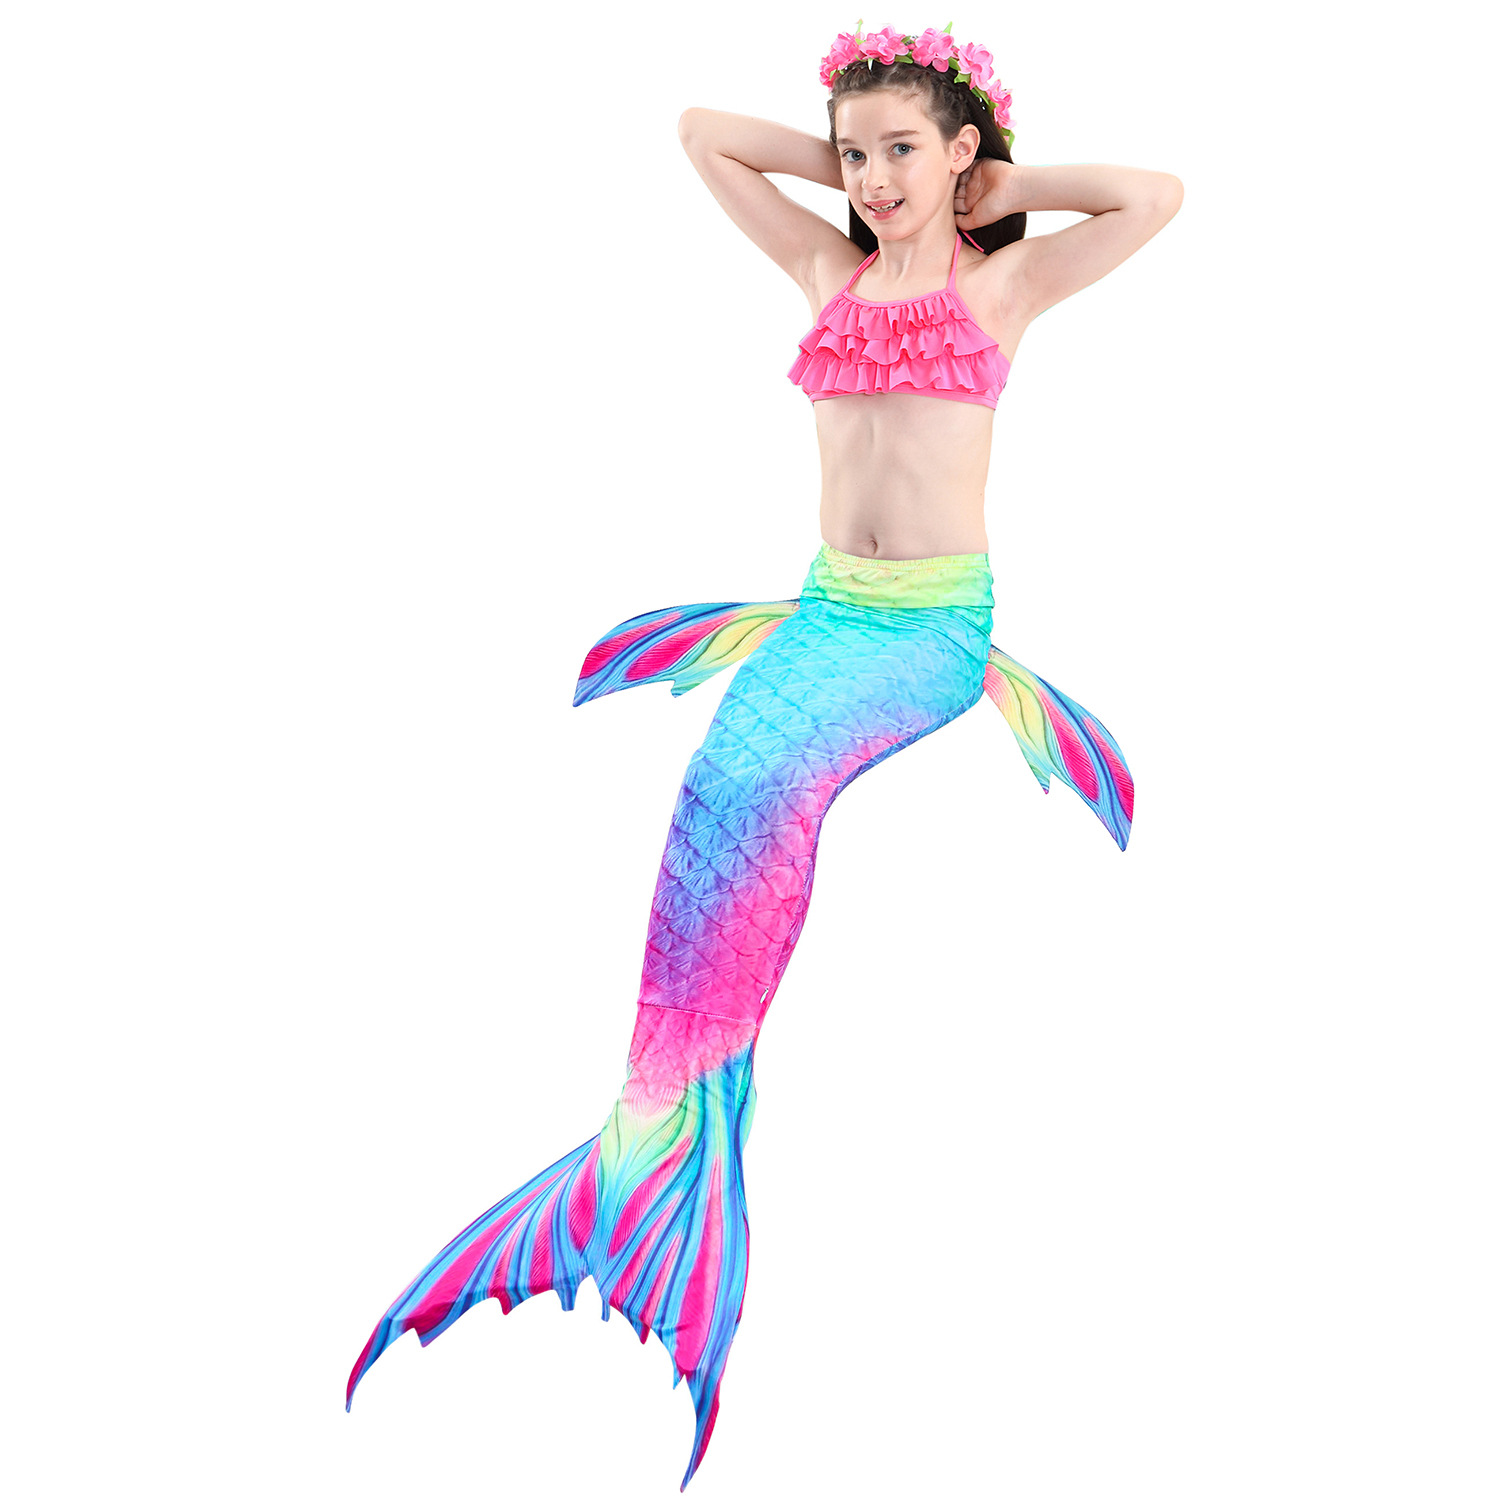 9314602329 898390851 - 4PCS/Set HOT Kids Girls Mermaid Tails with Fin Swimsuit Bikini Bathing Suit Dress for Girls With Flipper Monofin For Swim